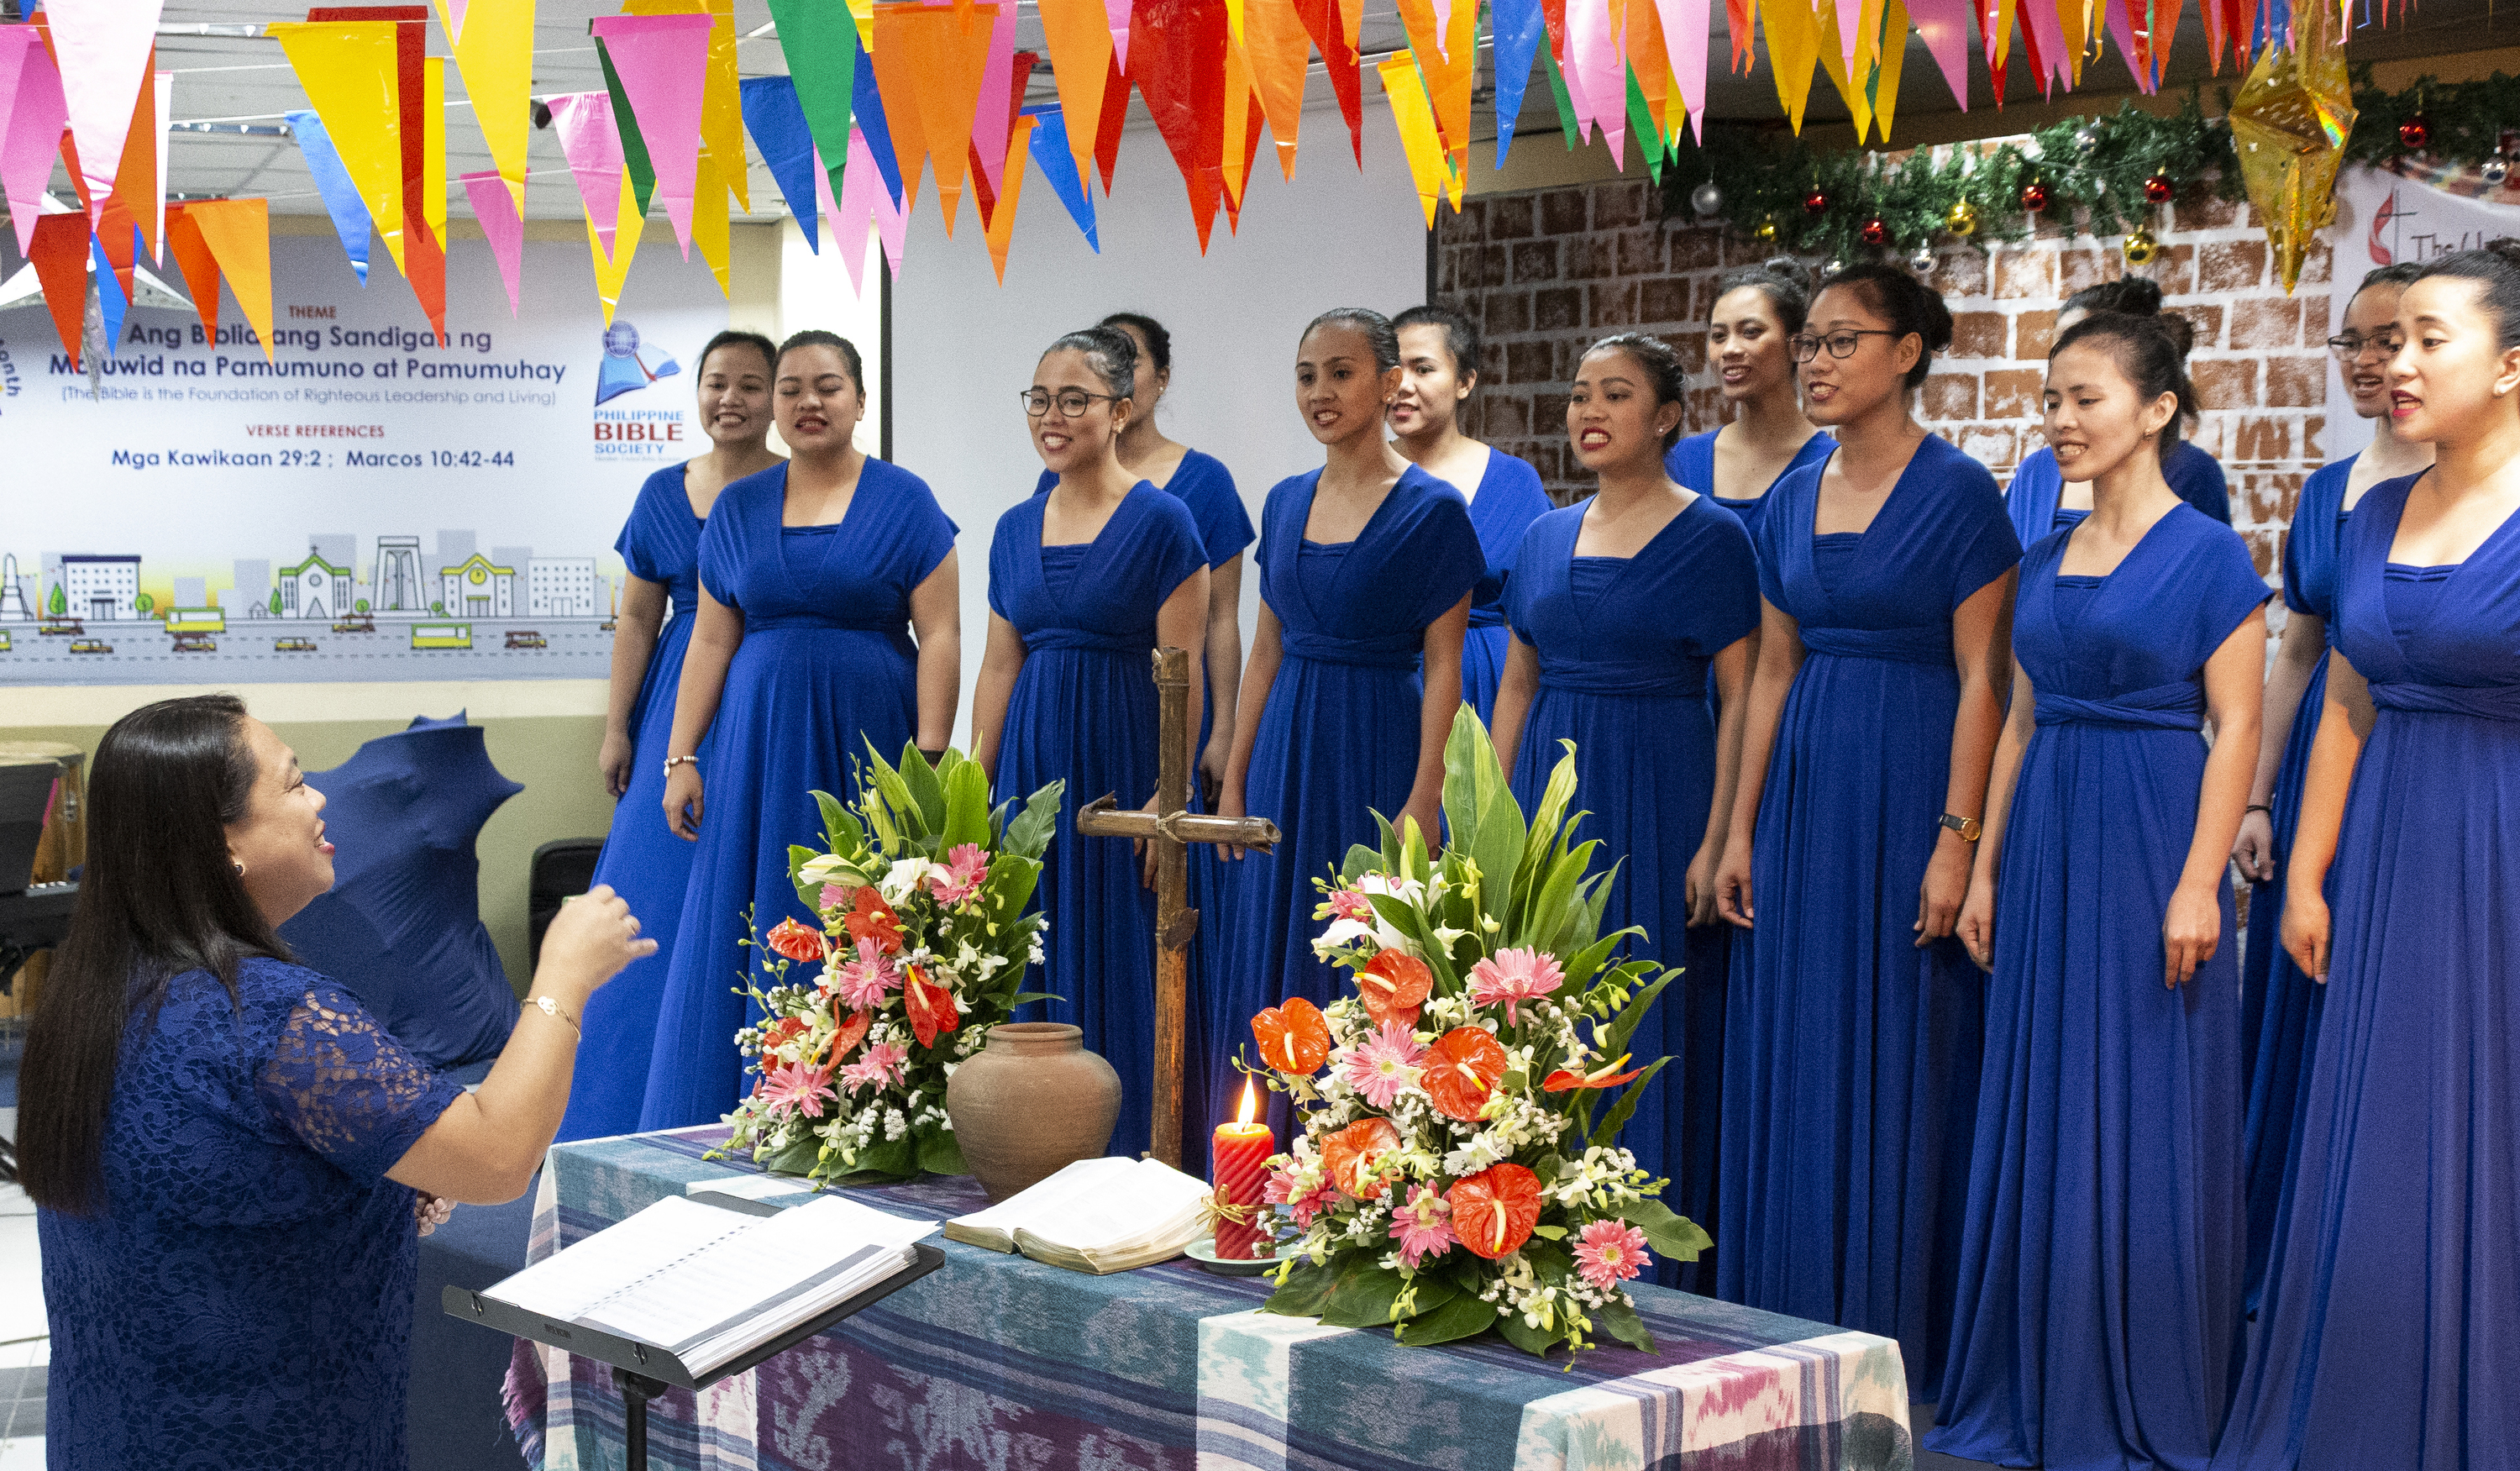 The Harris Memorial College Choraliers sing during the dedication ceremony. Photo by Tim Tanton, UMNS.